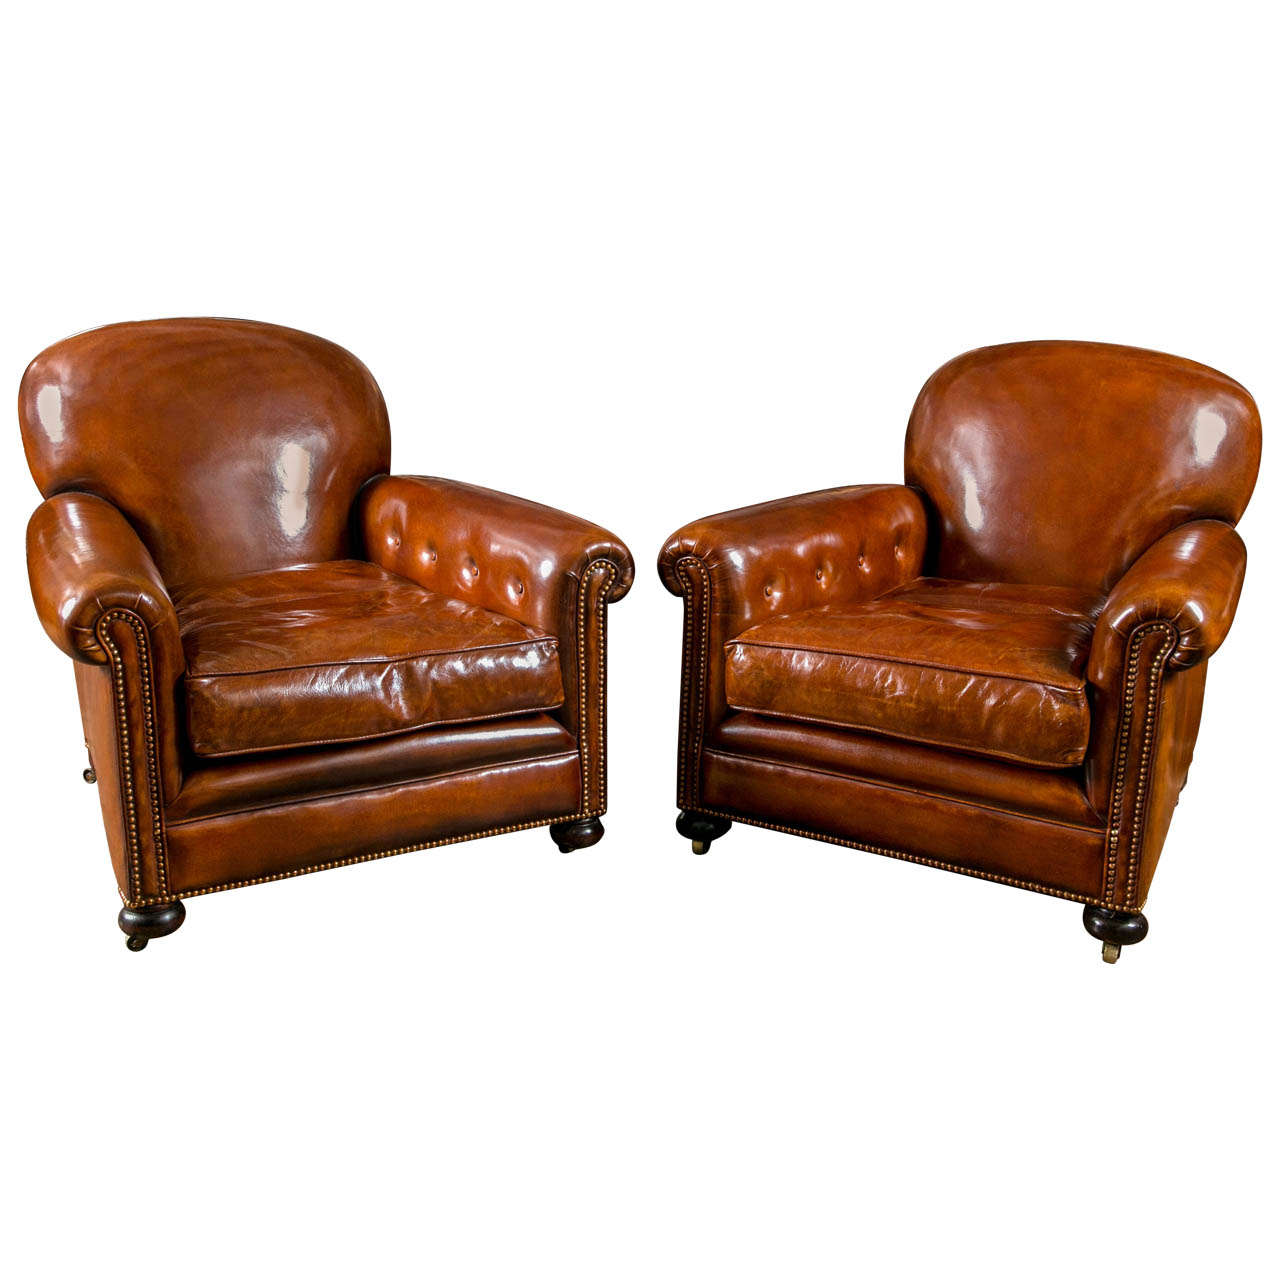 French Club Chair French Leather Club Chairs For Sale At 1stdibs